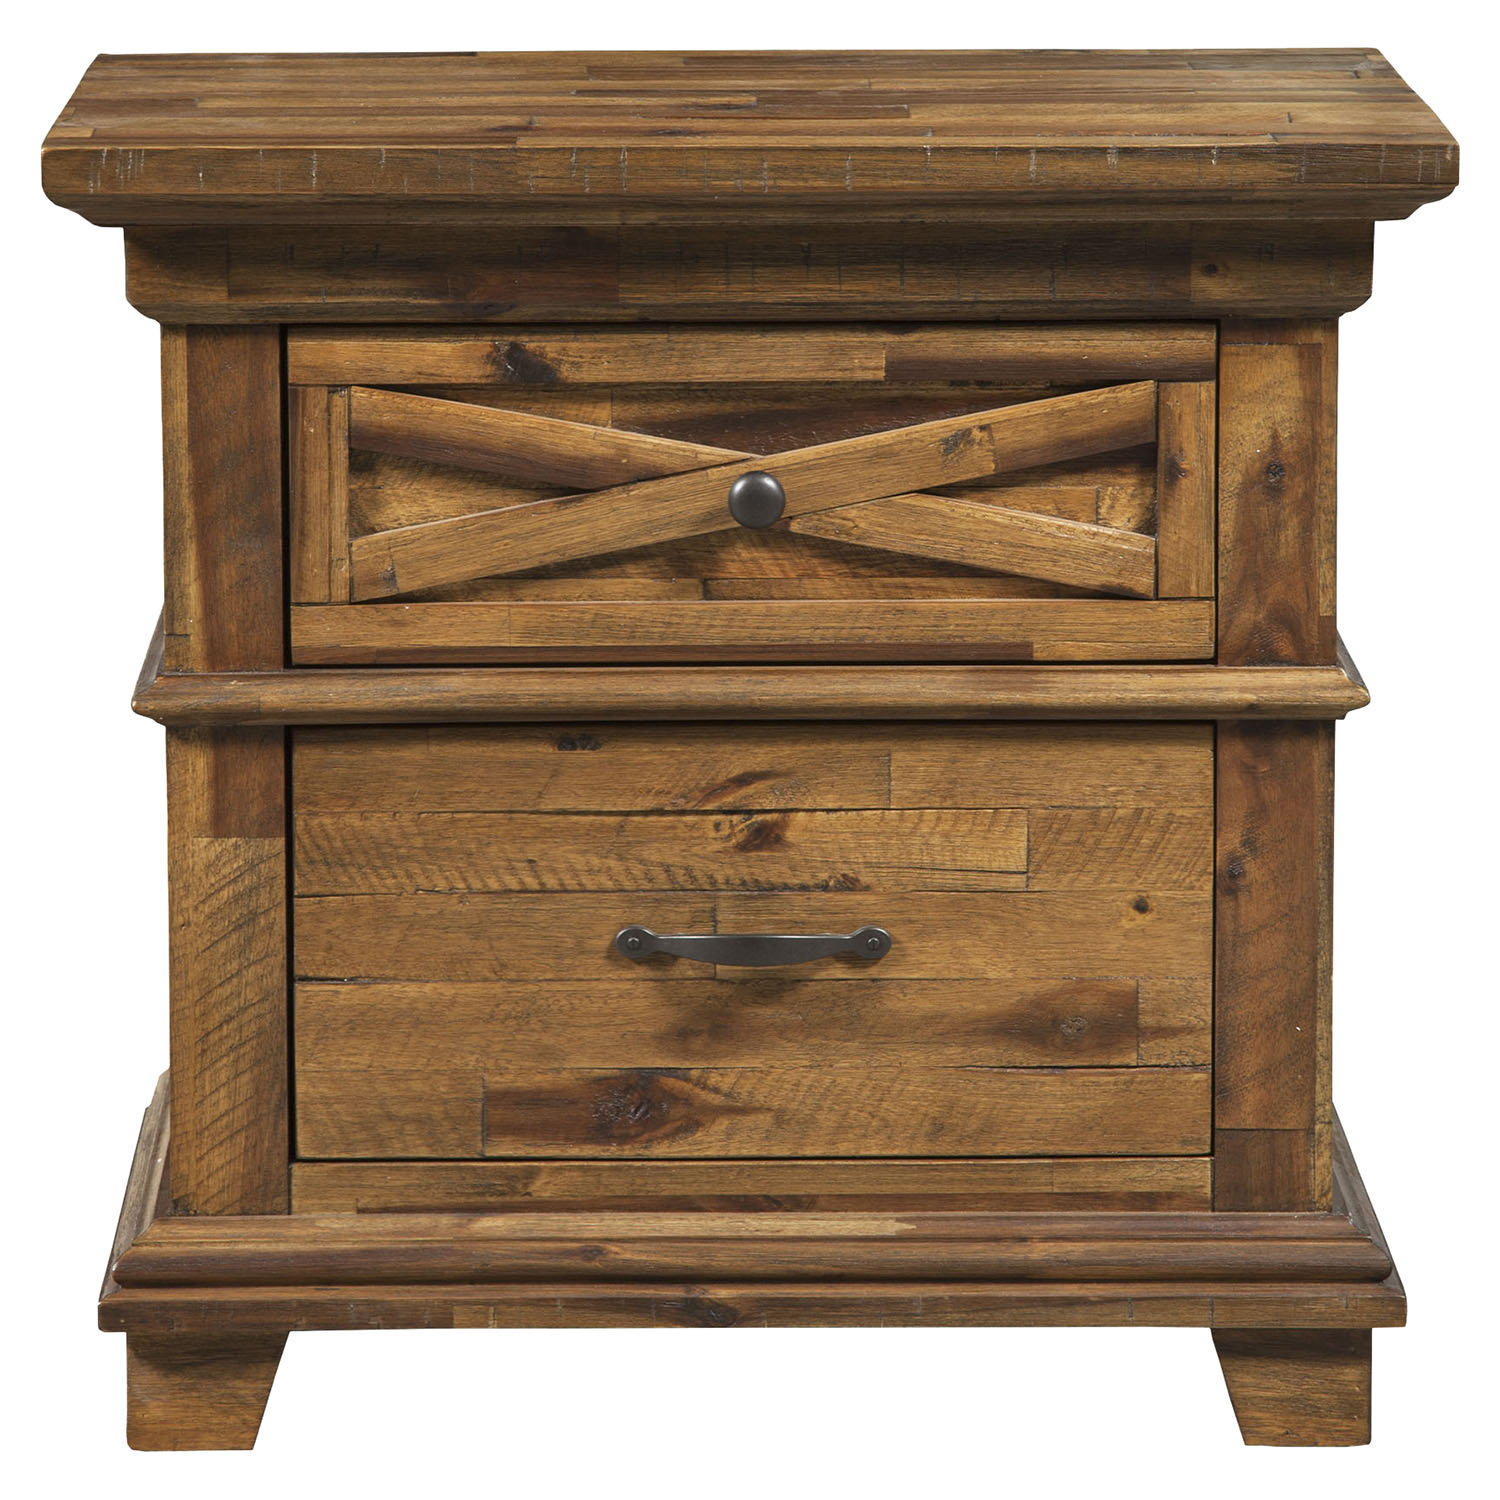 St James 2-Drawer Nightstand - Salvaged Brown